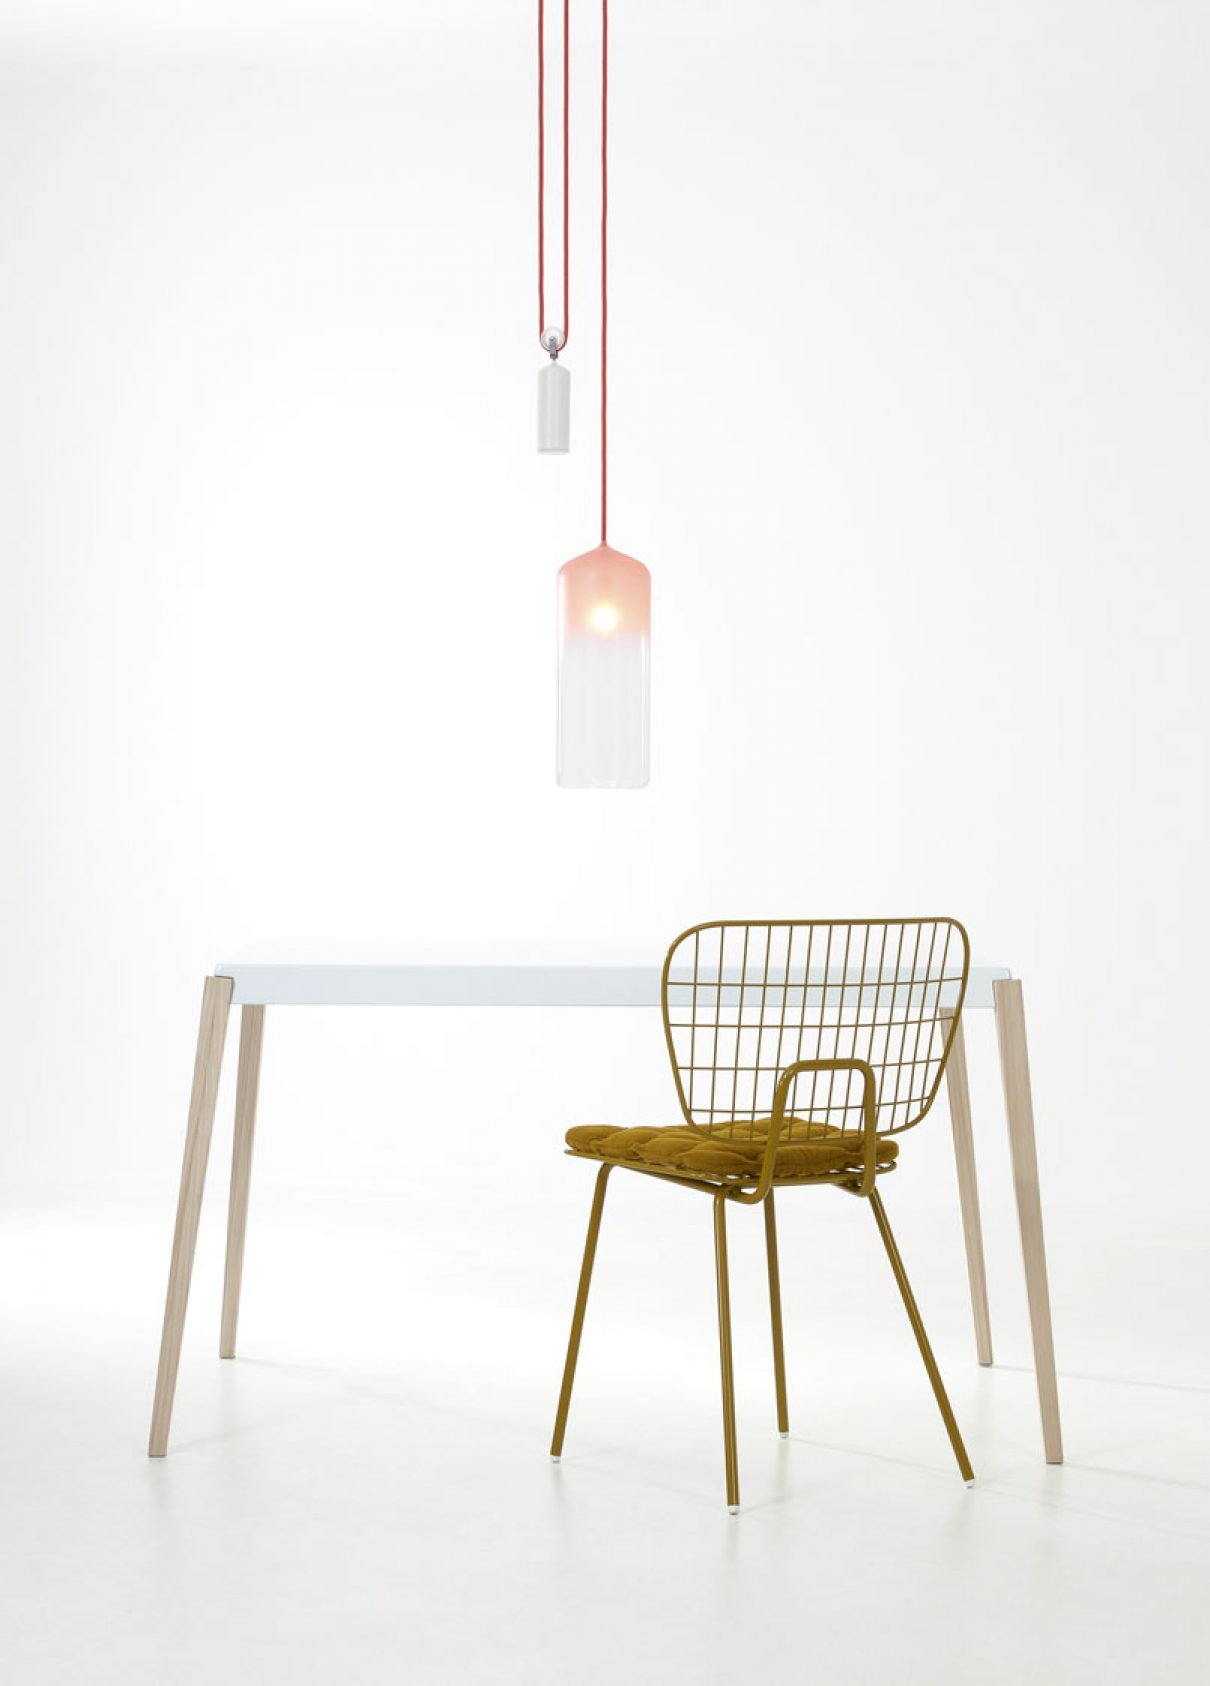 Lightness in Lines van Studio WM